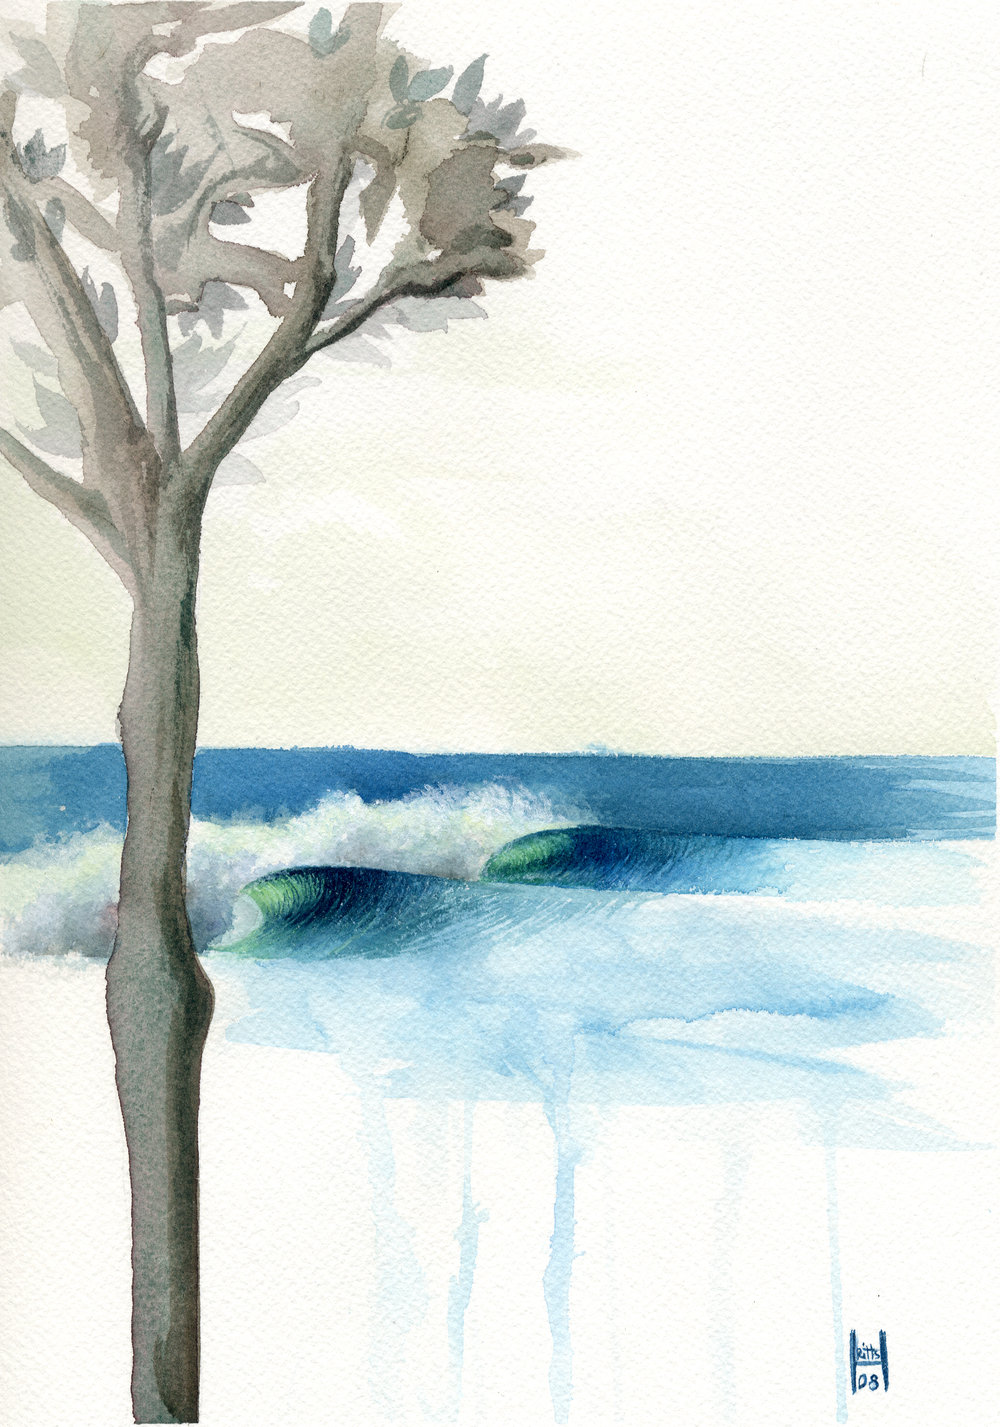 """Silhouette Waves"" Watercolor on Illustration Board"